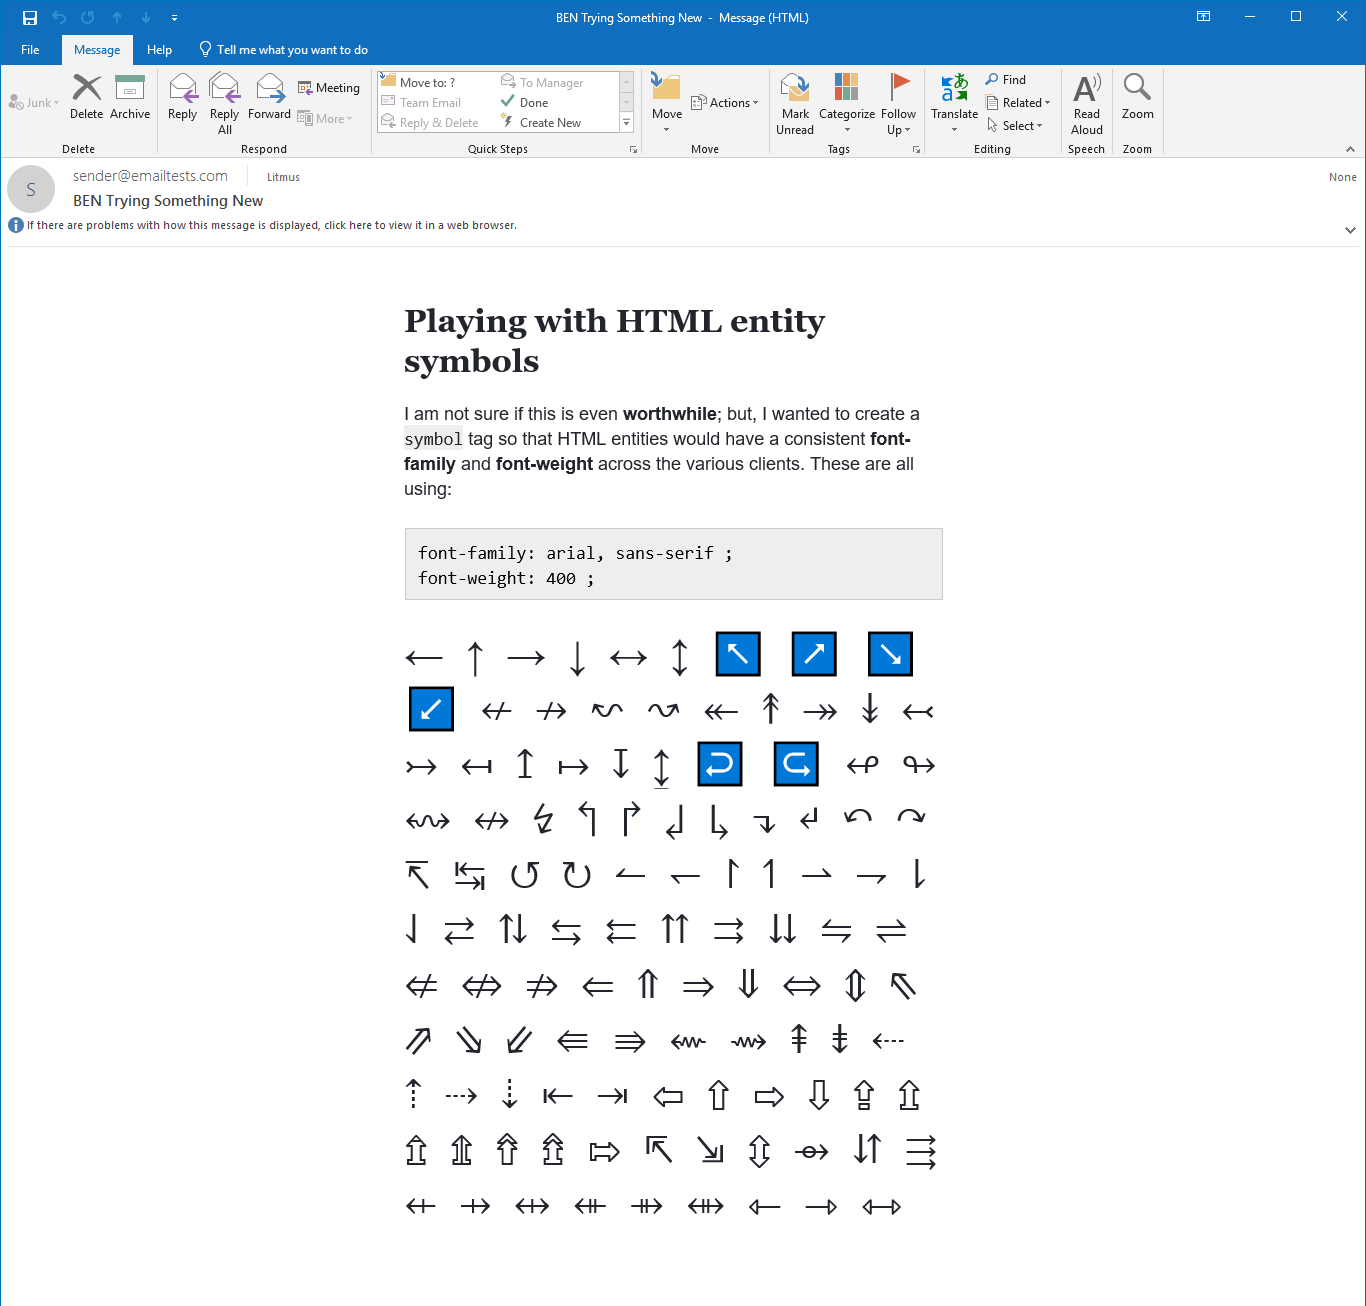 Email rendering in Outlook 2019 on Windows 10.